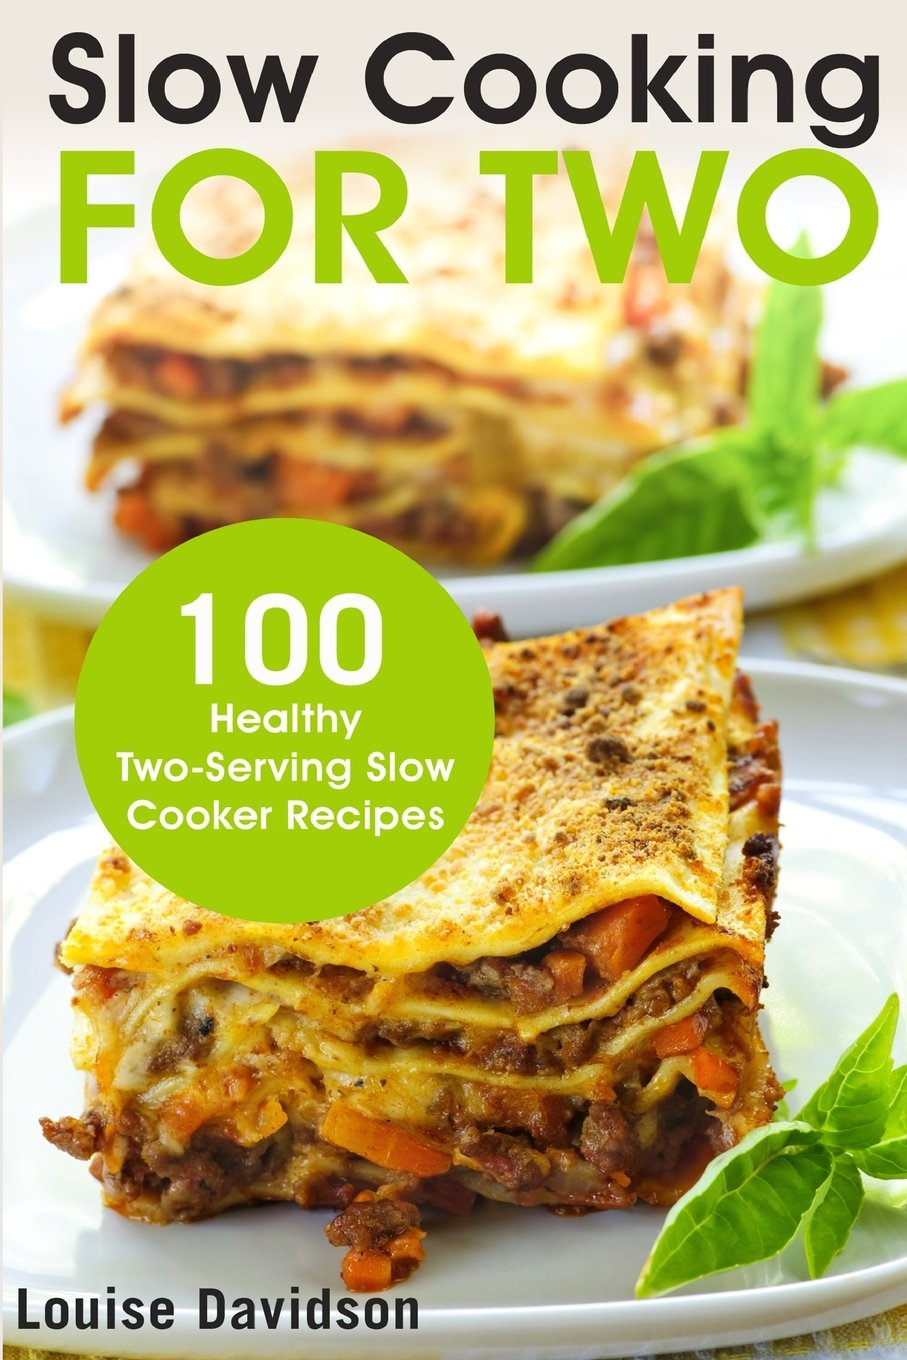 Slow Cooking for Two: 100 Healthy Two-Serving Slow Cooker Recipes (Cooking for Two Cookbook) (Volume 1) ebook